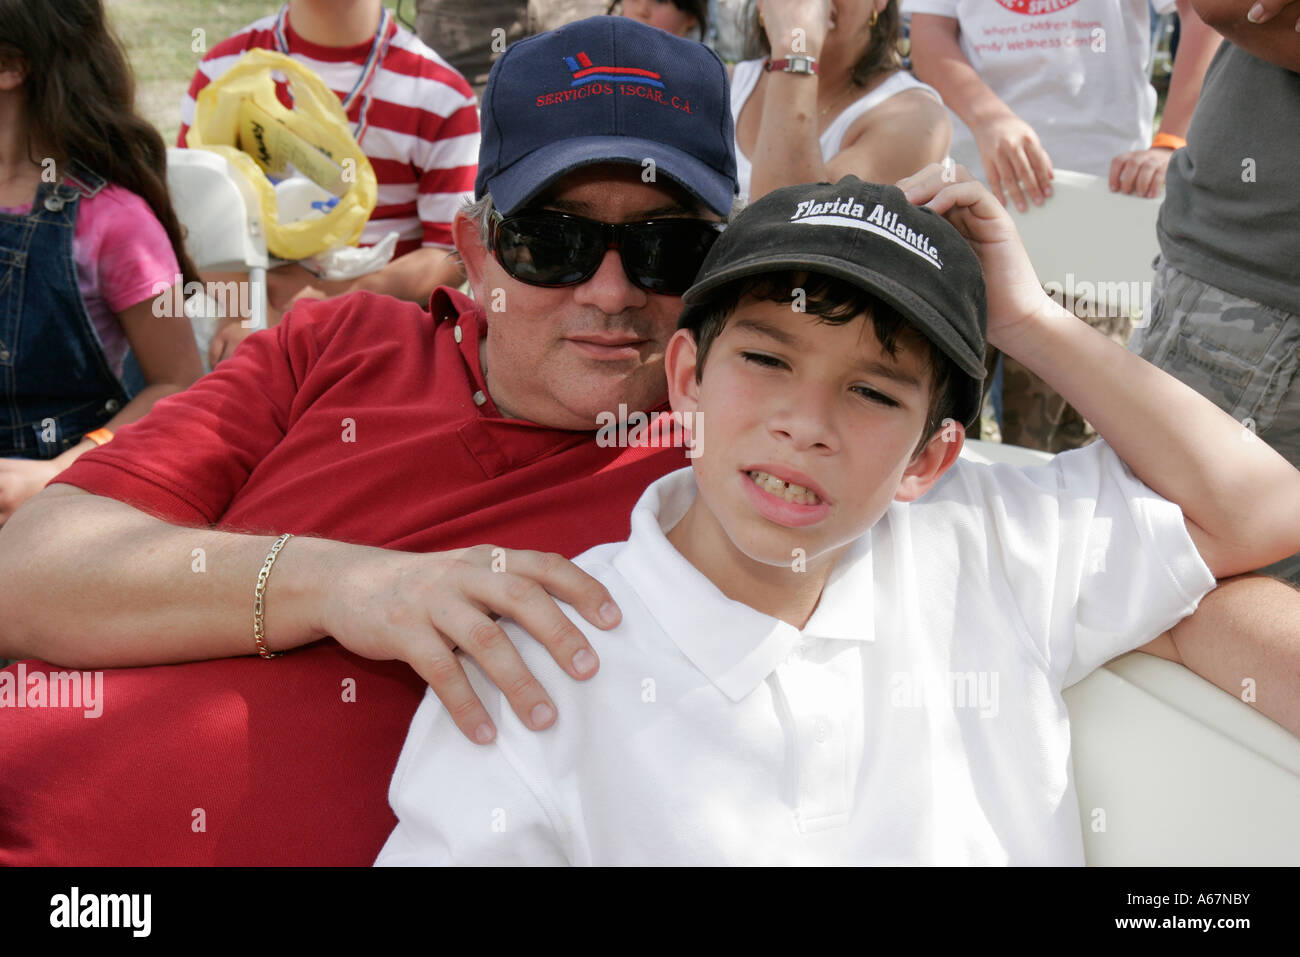 Hispanic family activities Spanish Miami Miami Florida Kendall Family Festival Of The Arts Disabled Children Activities Hispanic Boy Father Alamy Miami Miami Florida Kendall Family Festival Of The Arts Disabled